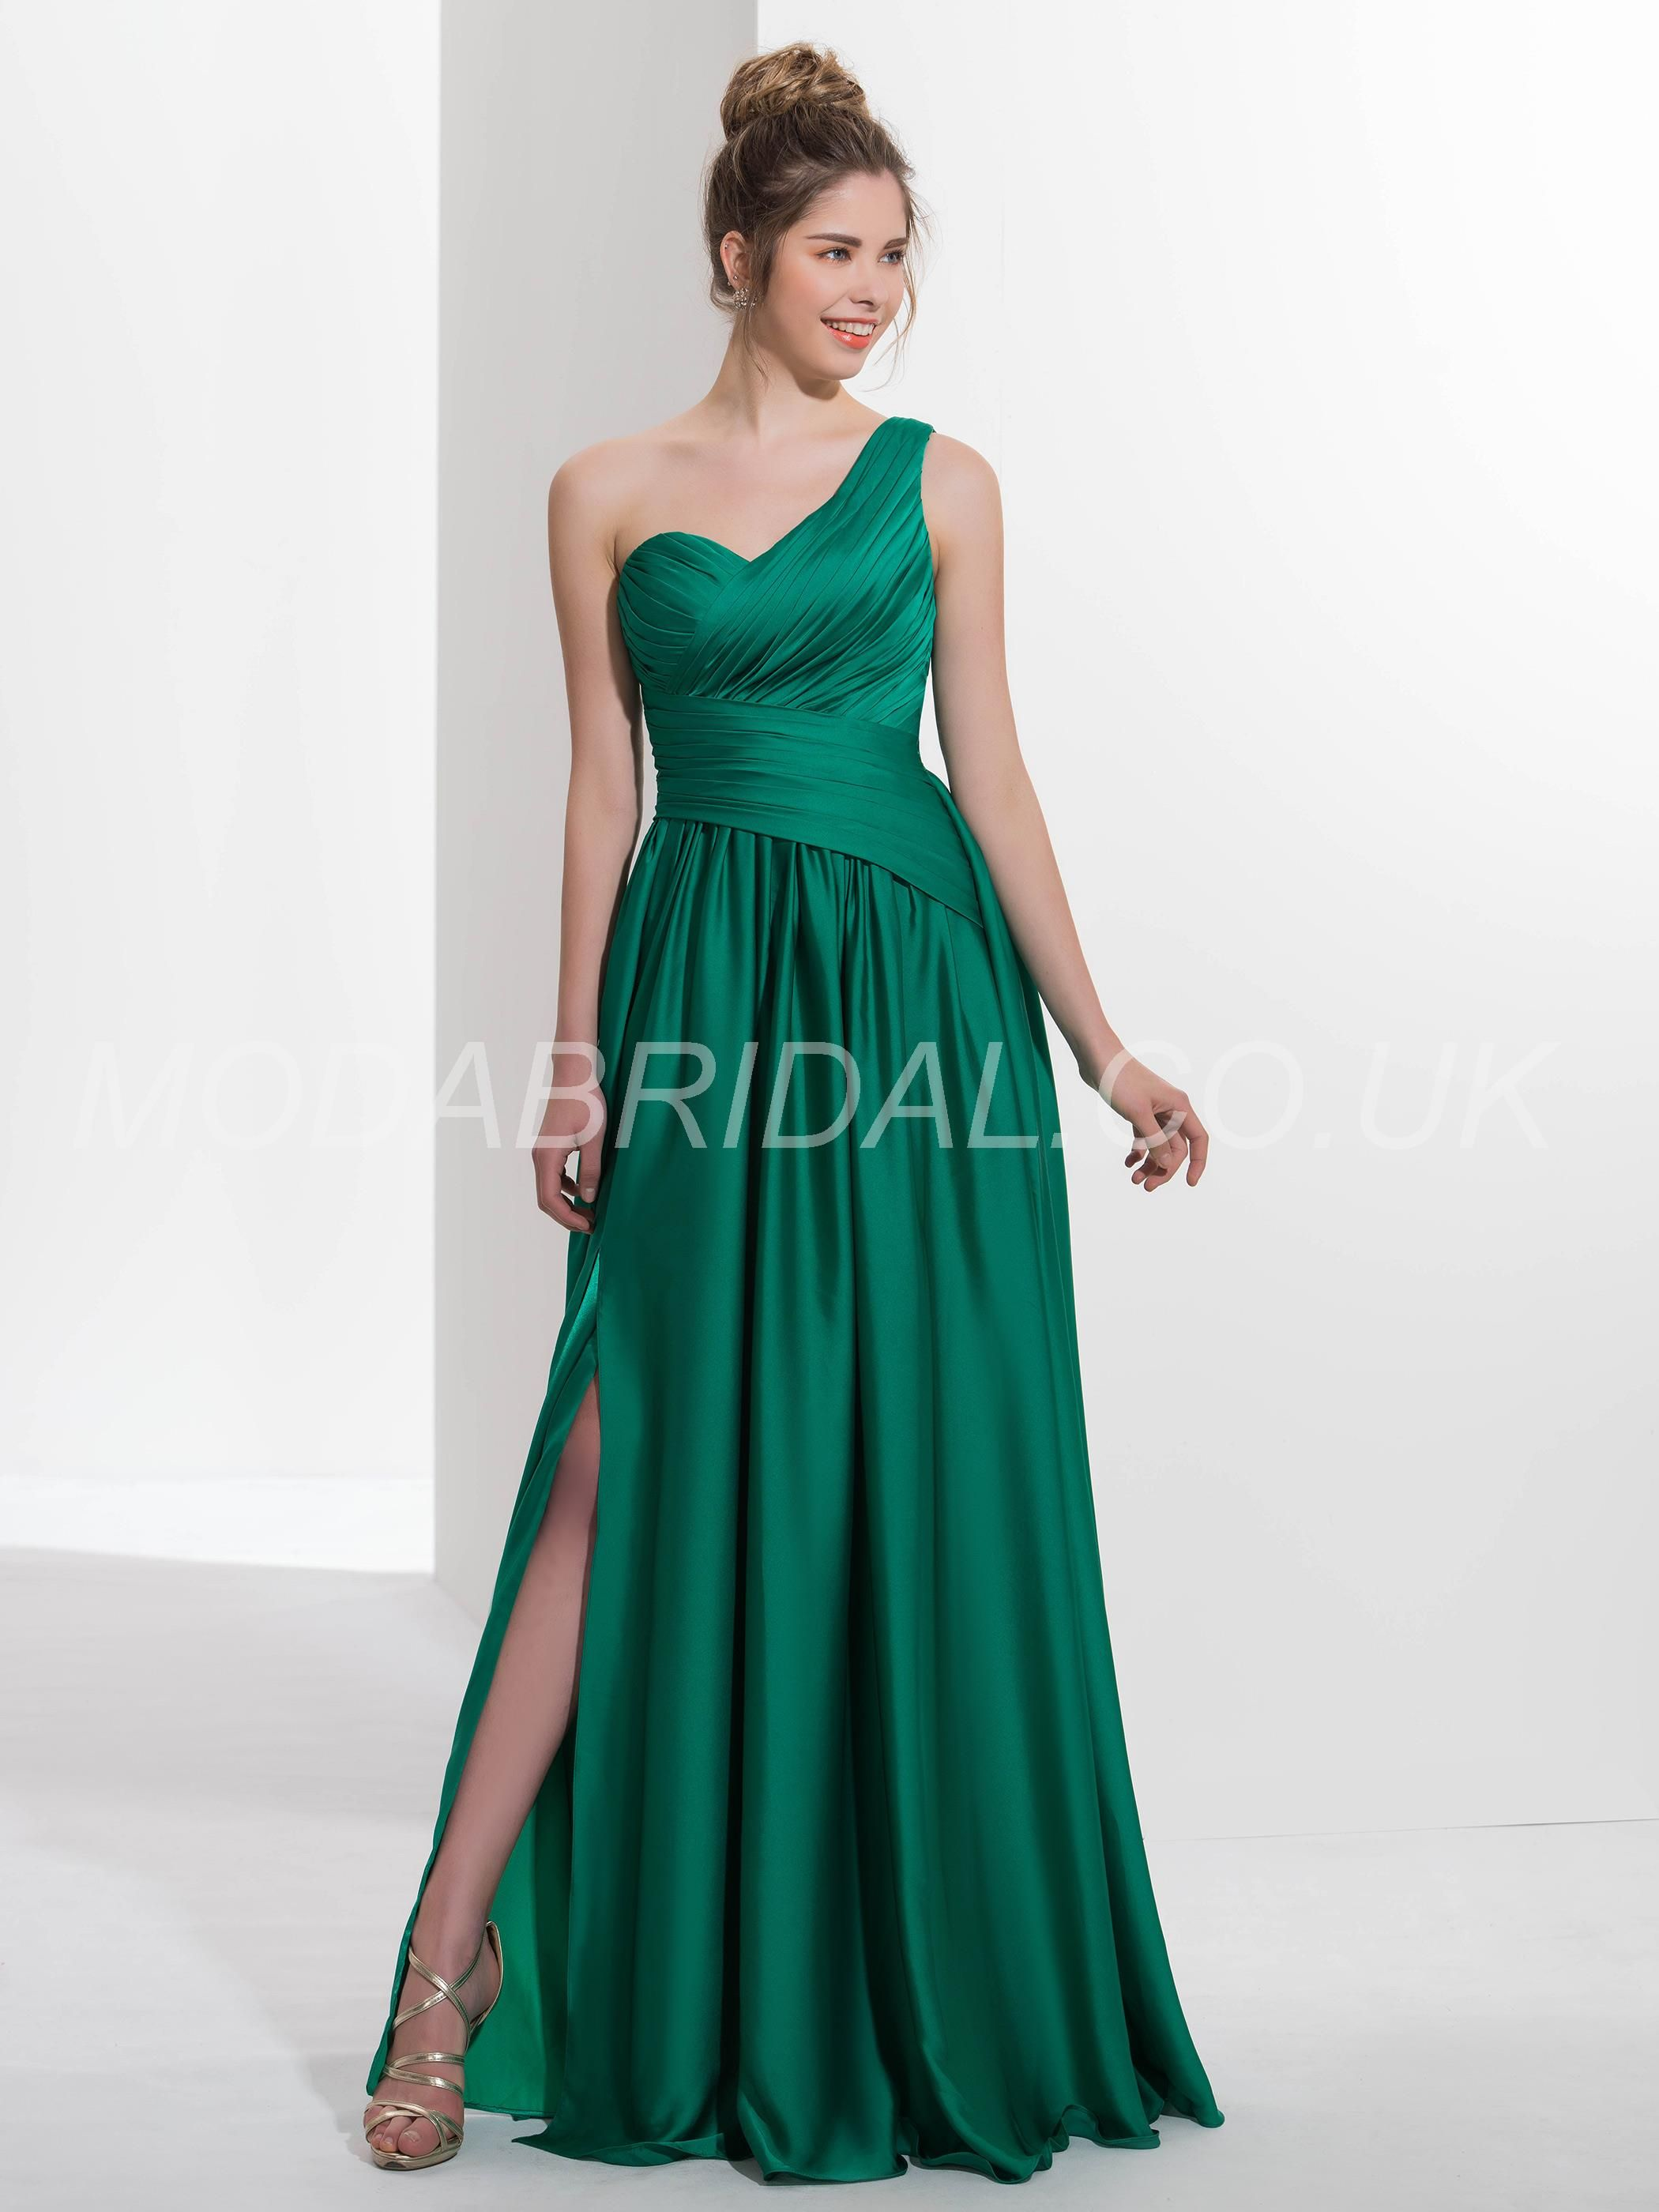 Modabridal Co Uk Supplies Tailor Made Sleeveless One Shoulder Winter Green Button Summer Spring All Sizes Dress Max Dresses Prom Dresses Sweep Train Prom Dress [ 2800 x 2100 Pixel ]